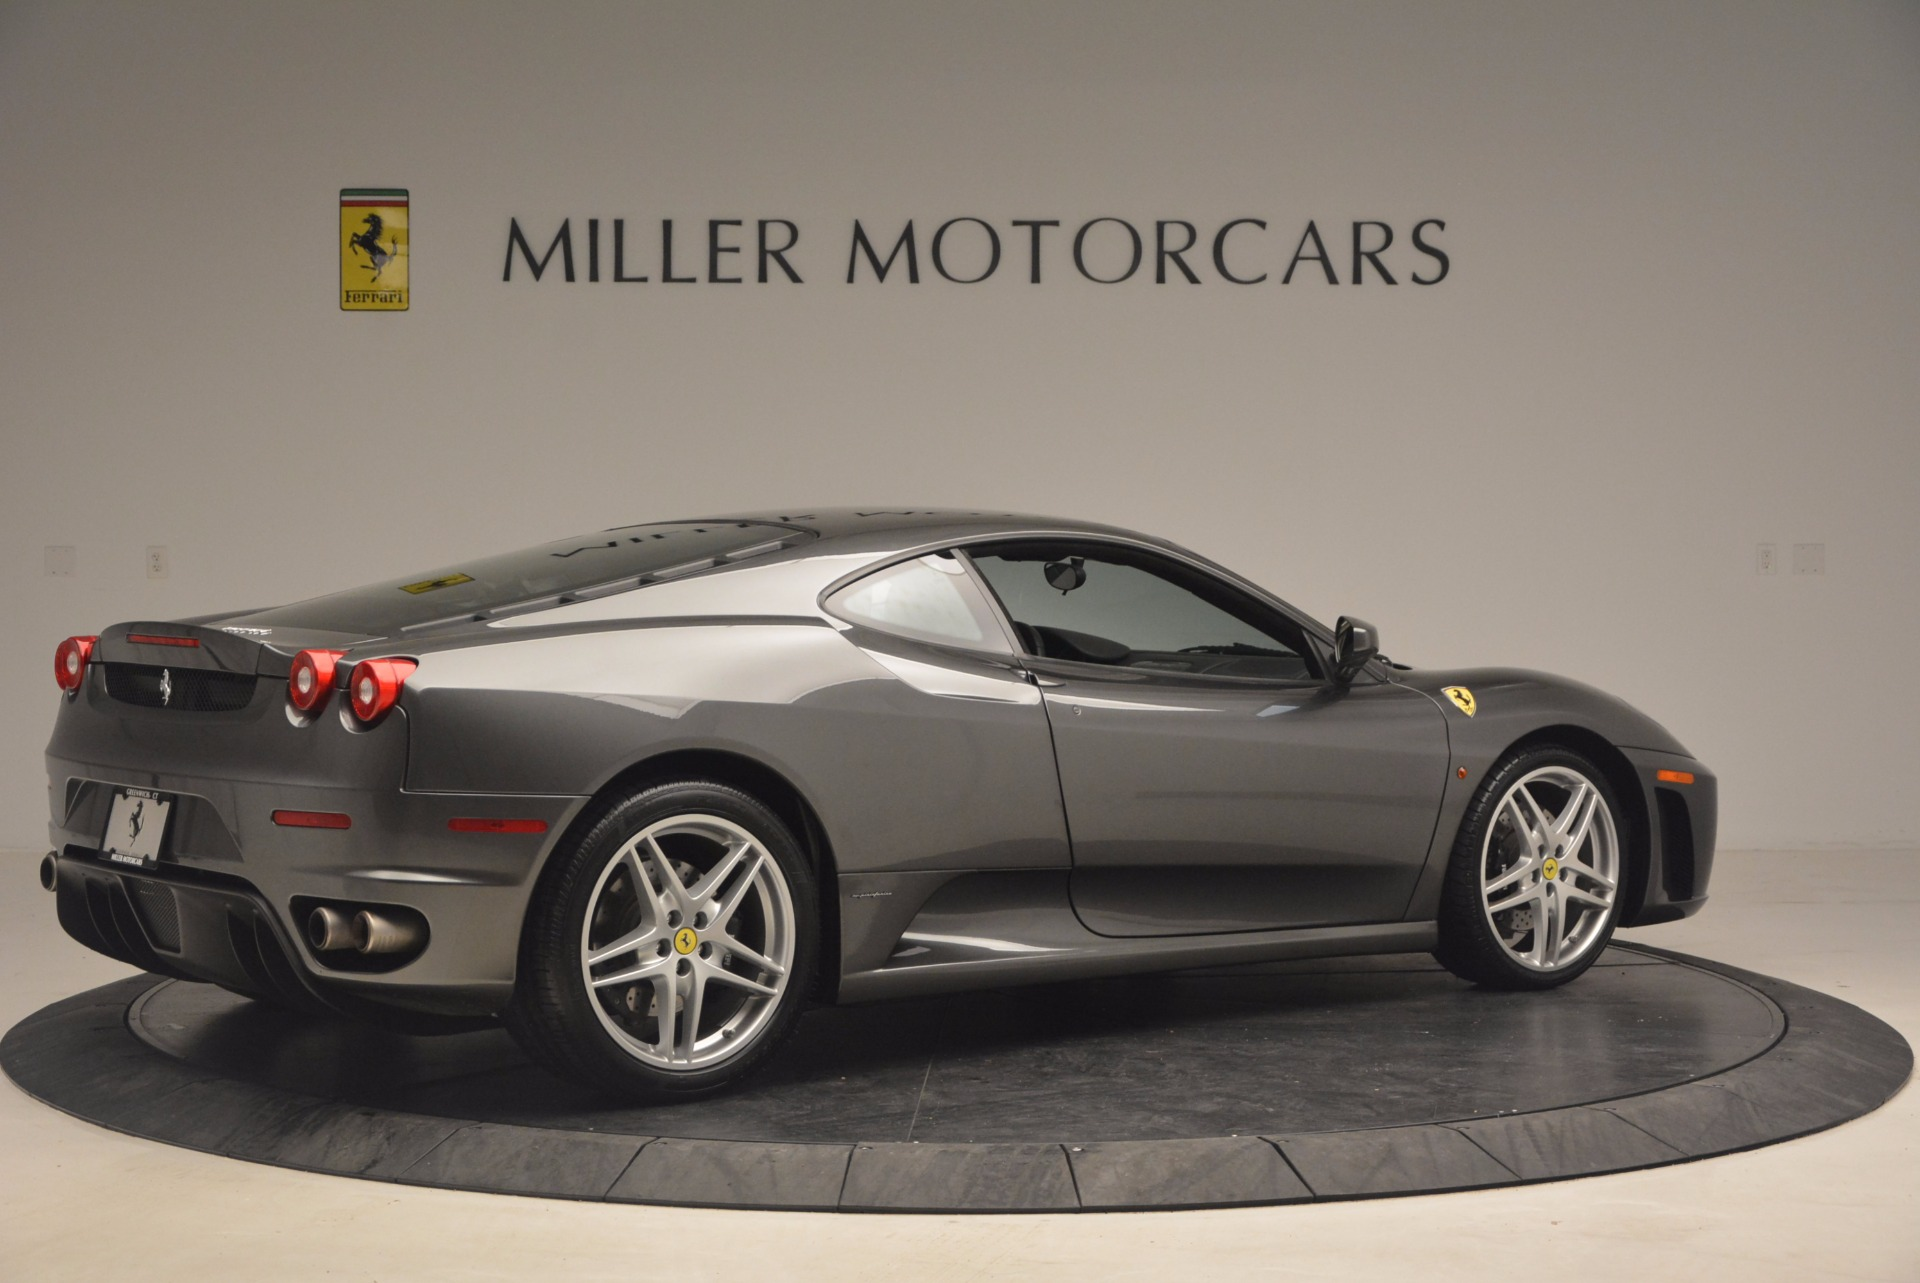 Used 2005 Ferrari F430 6-Speed Manual For Sale In Westport, CT 1286_p8